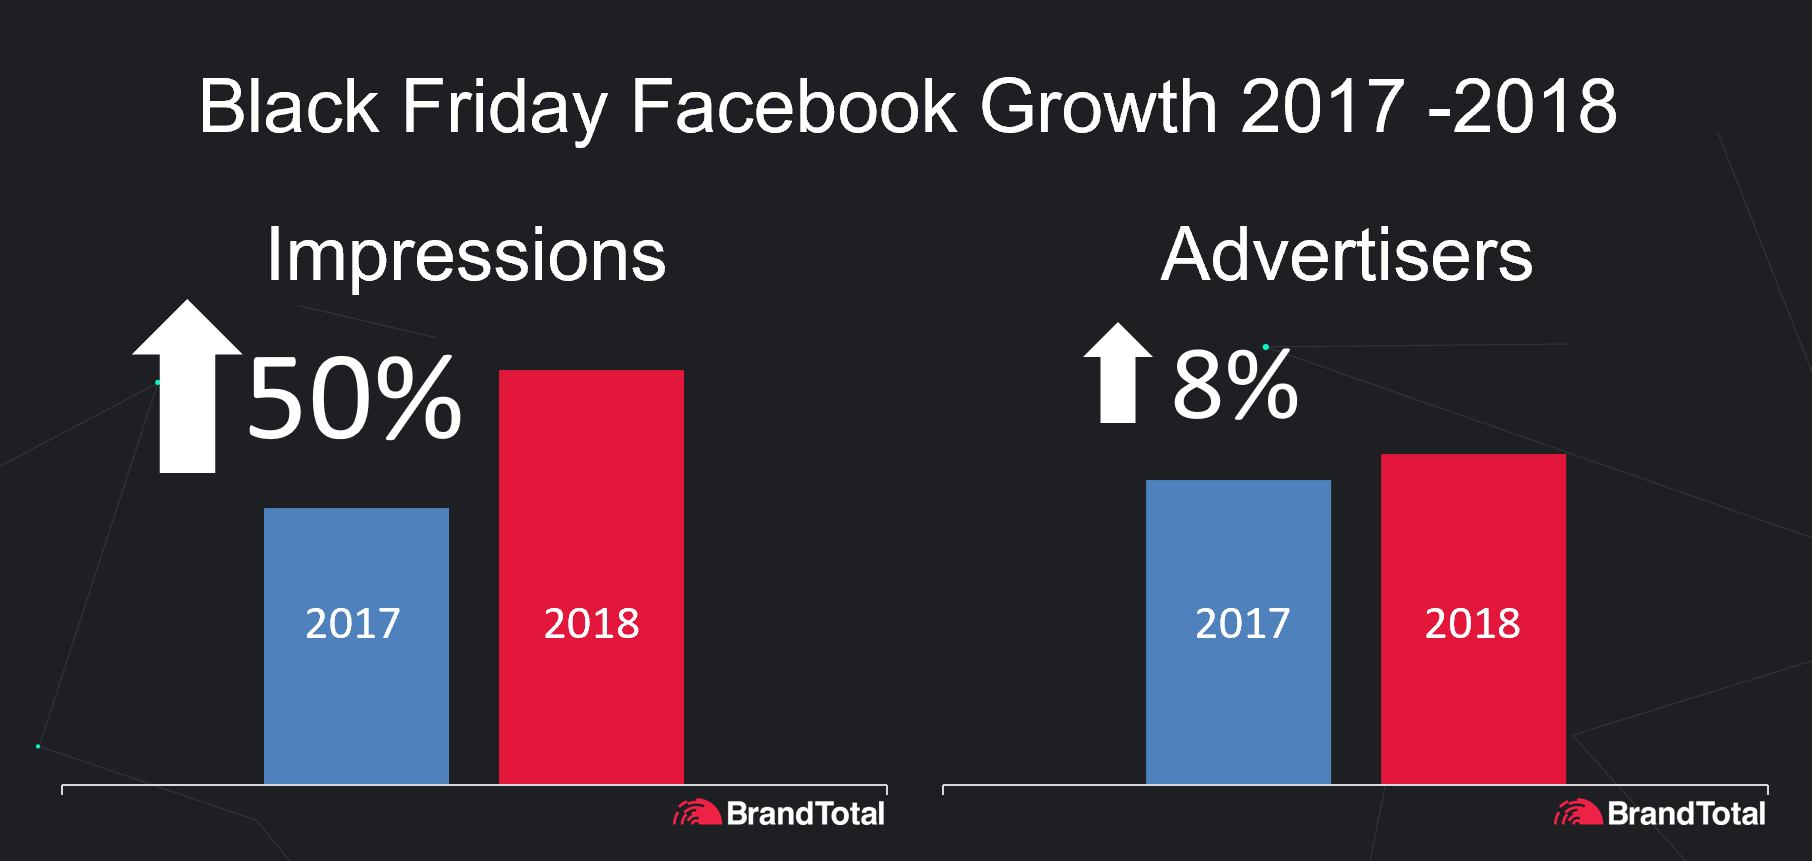 Black Friday Facebook Growth 2017 - 2018